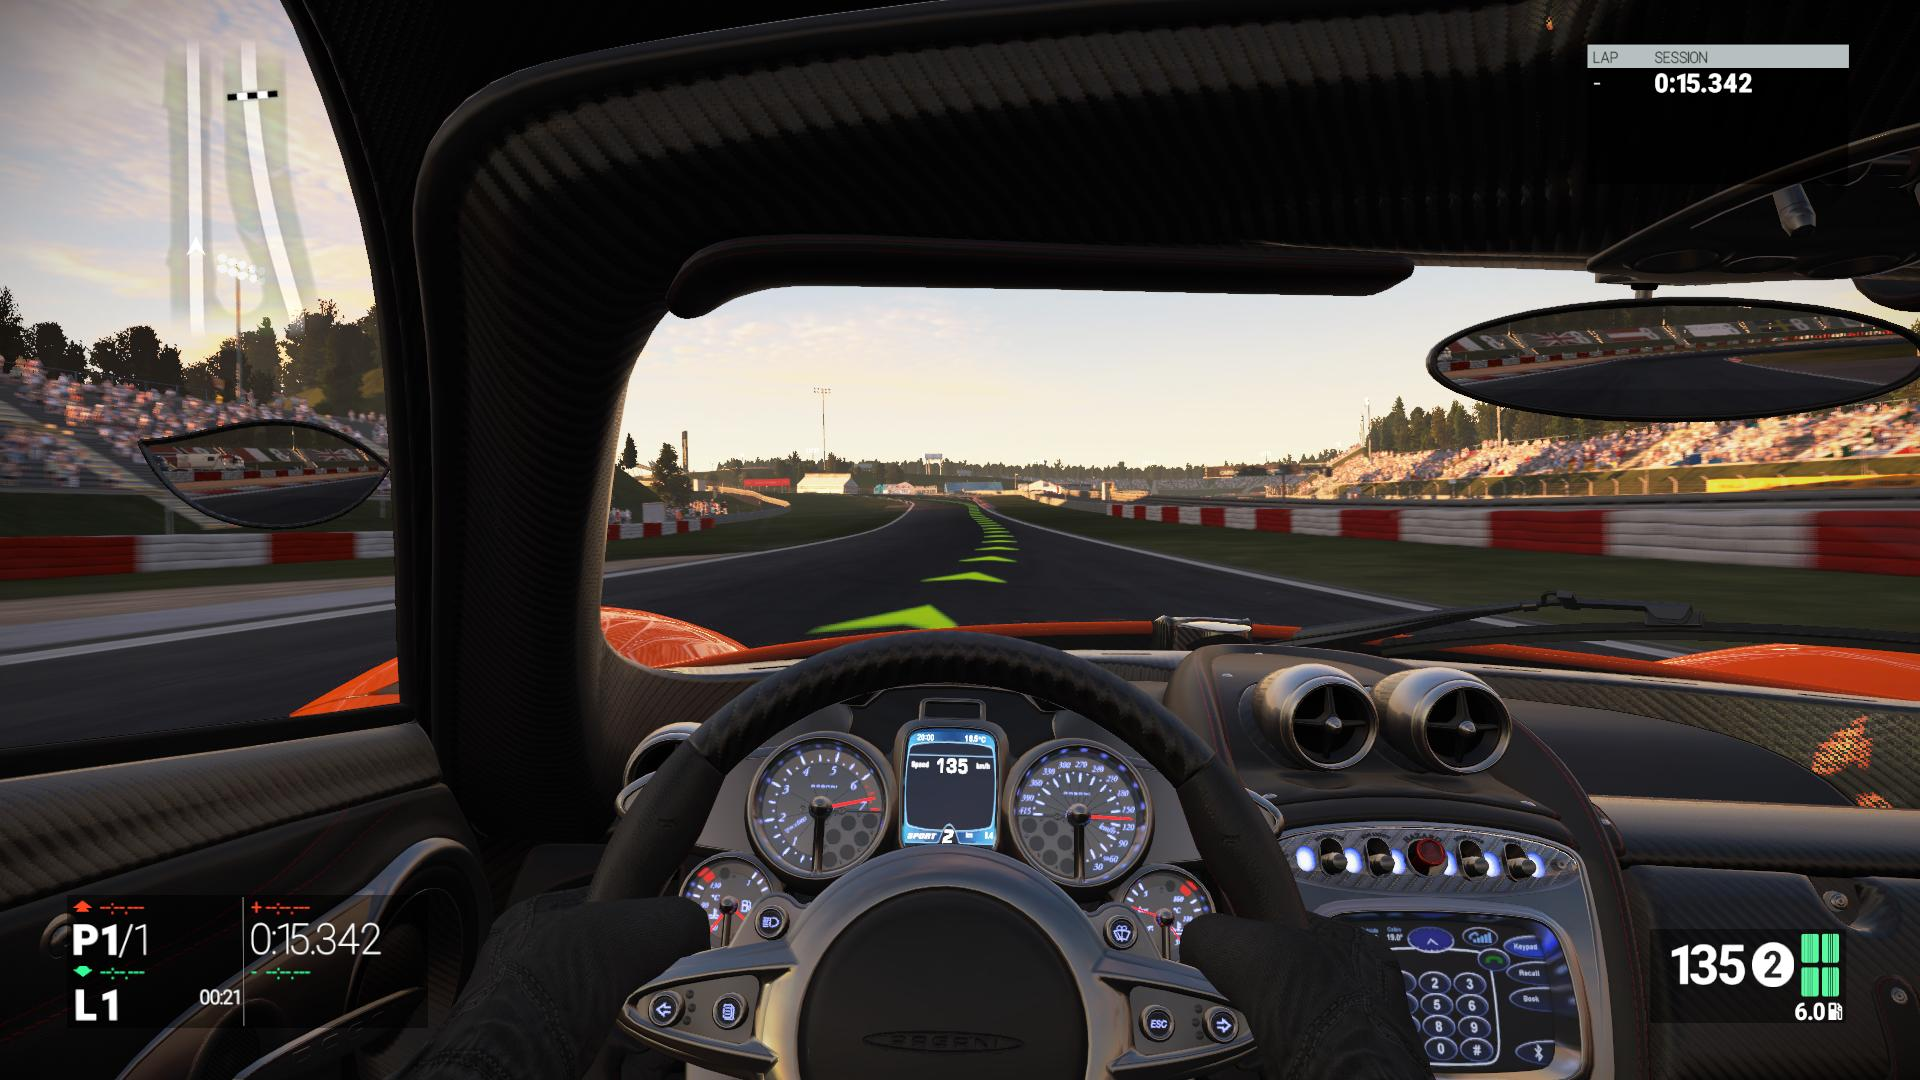 3rd project cars game of the year edition. Black Bedroom Furniture Sets. Home Design Ideas